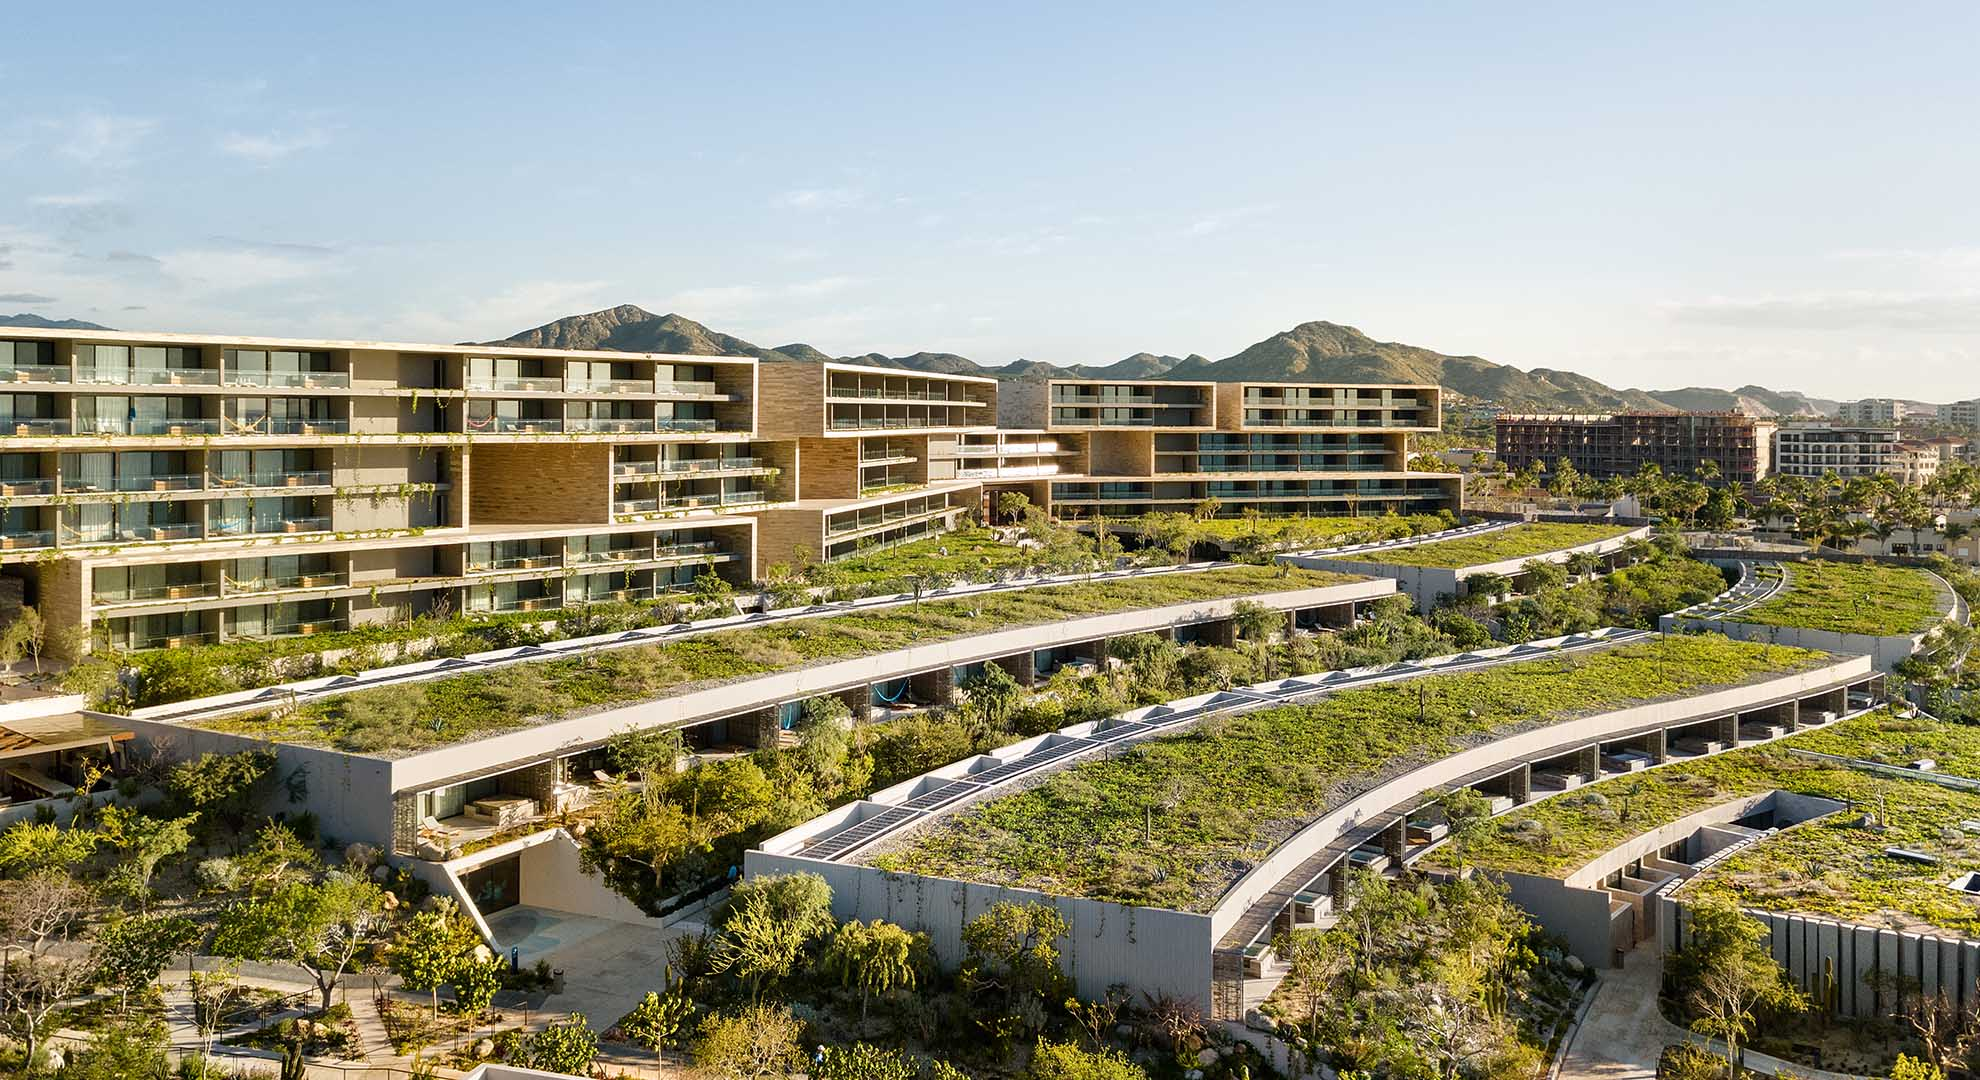 Solaz Los Cabos Resort by Sordo Madaleno Arquitectos in Mexico